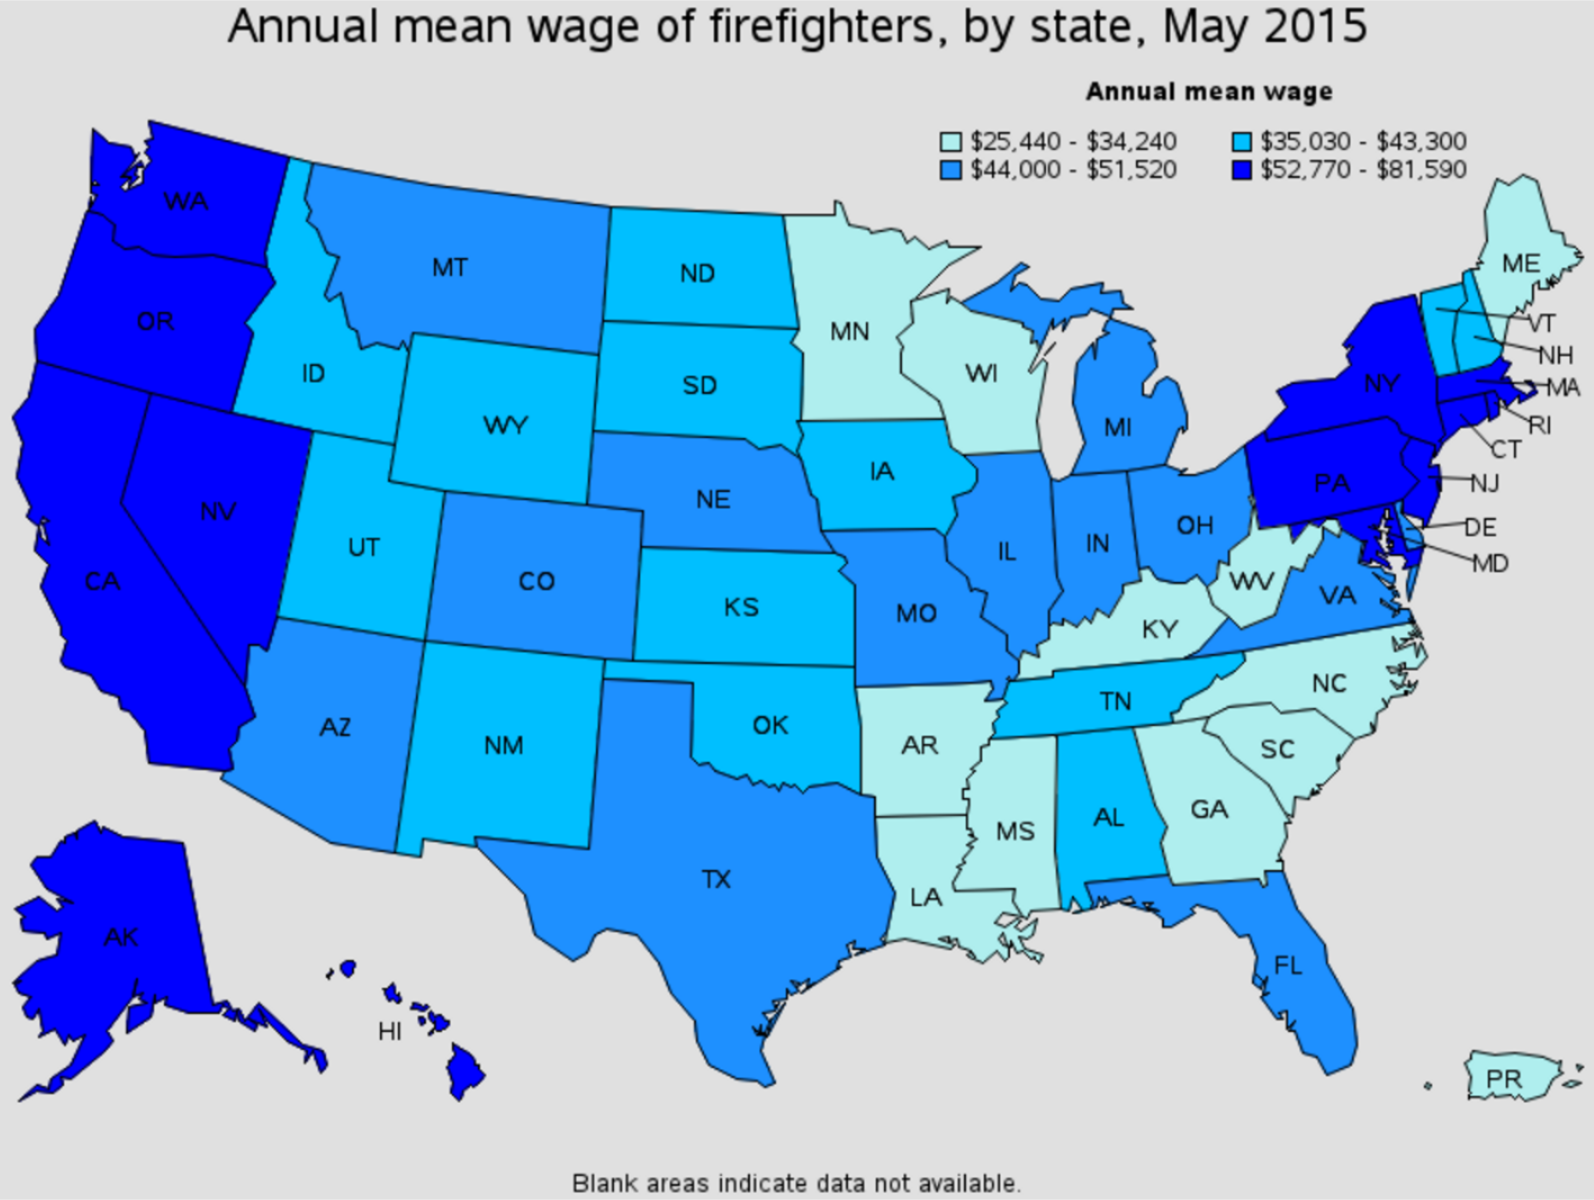 firefighter average salary by state Weirton West Virginia